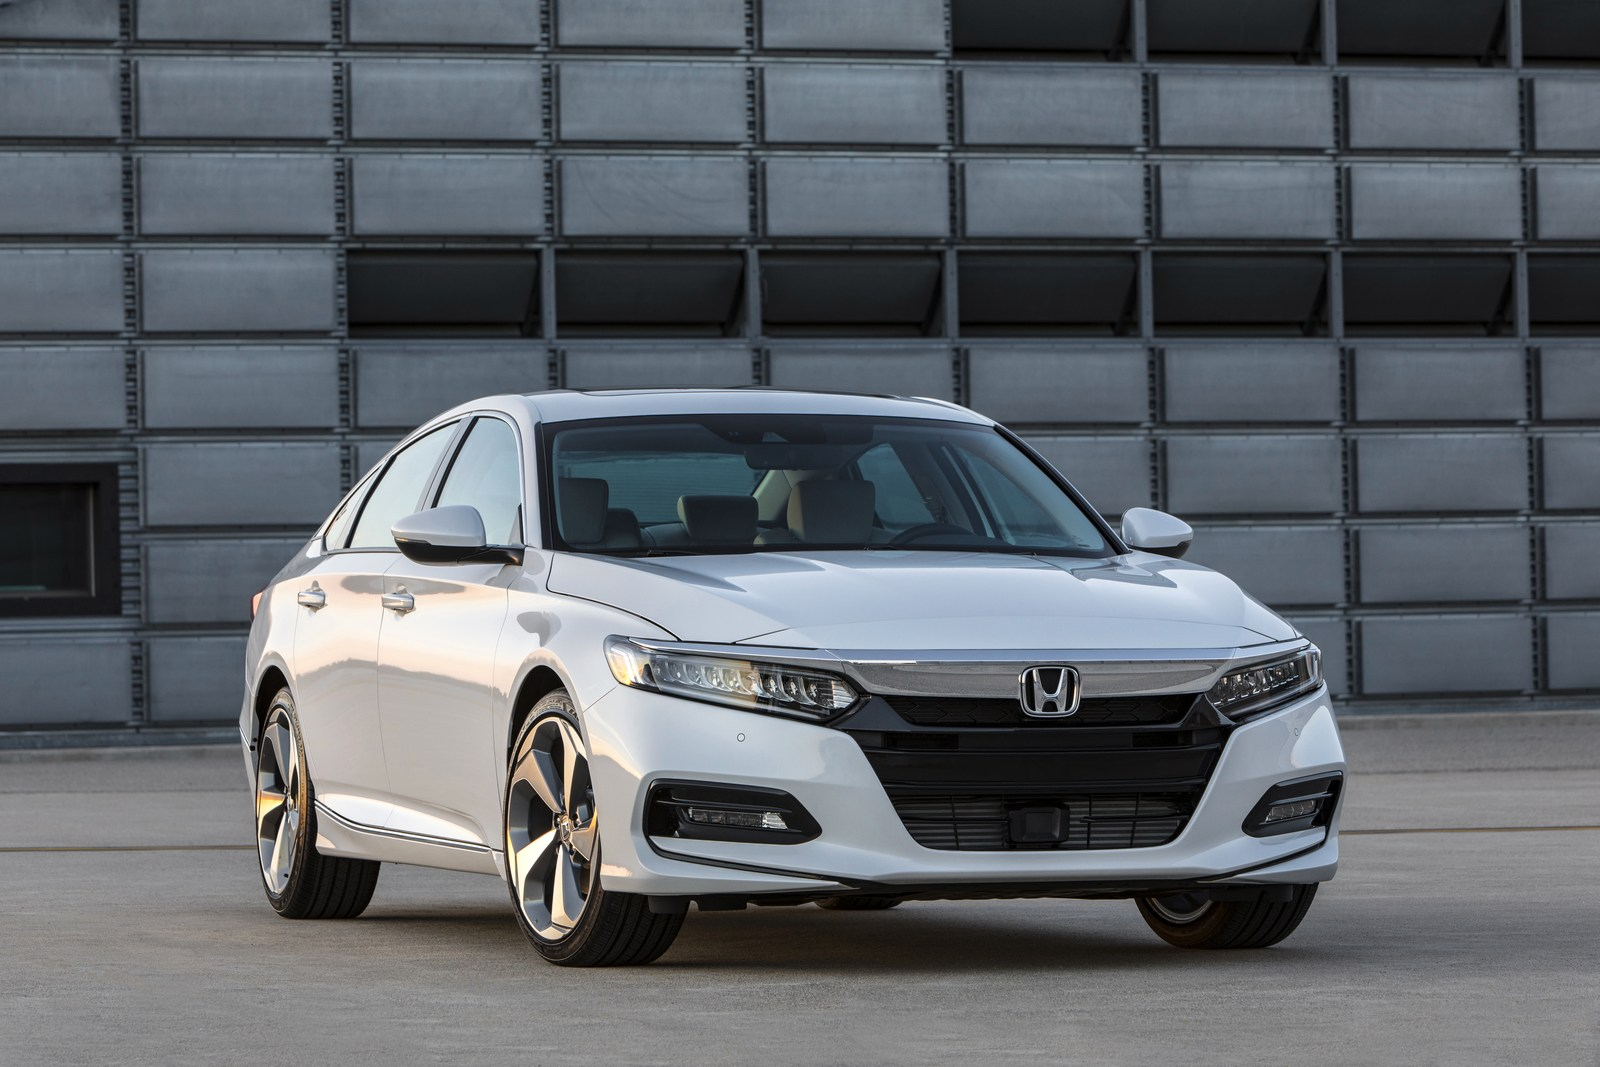 Honda Accord 2018 (2)